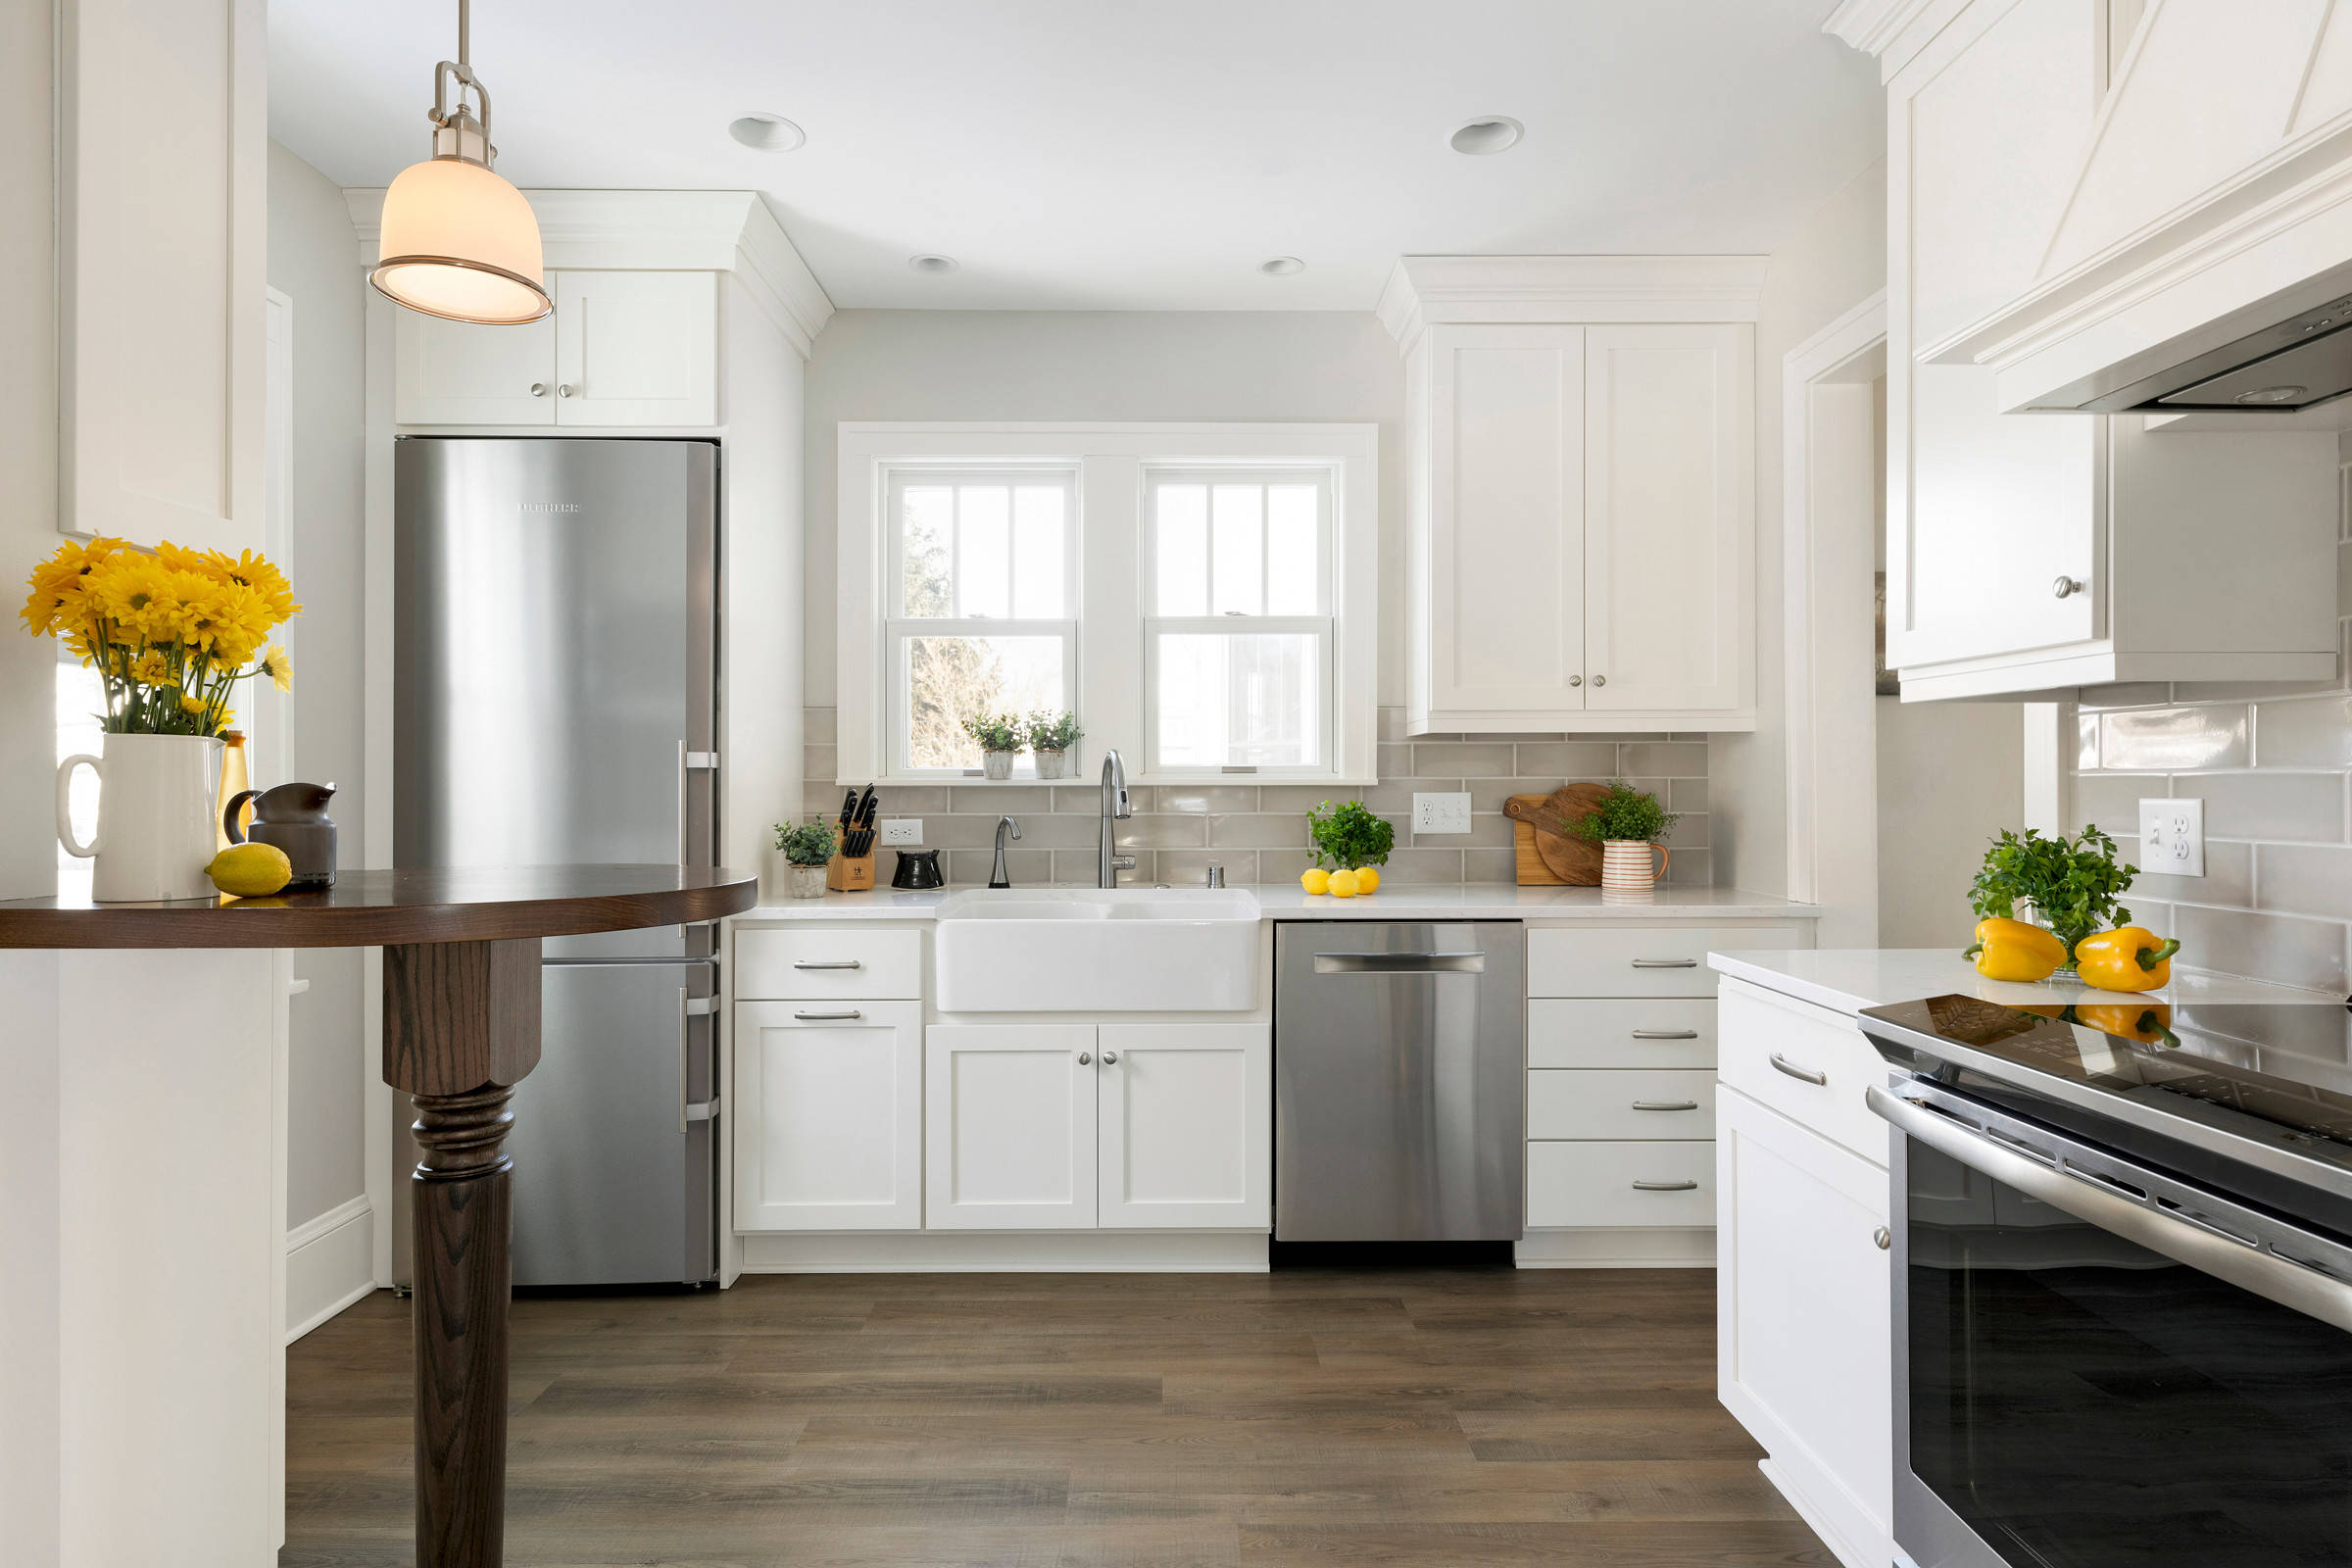 75 Beautiful Farmhouse Kitchen With Gray Backsplash Pictures Ideas December 2020 Houzz